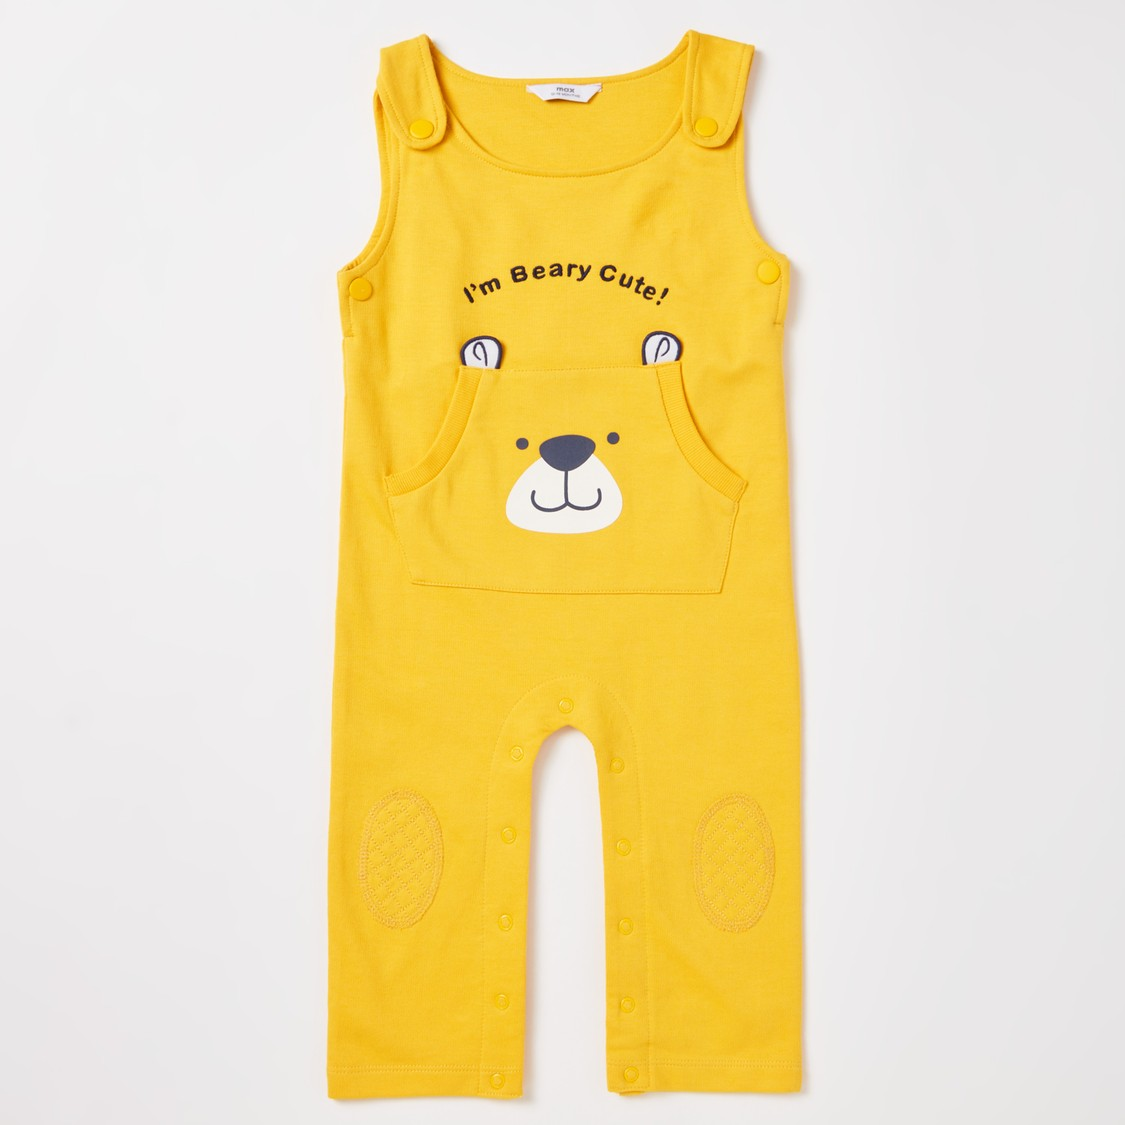 Striped Long Sleeves T-shirt with Full Length Animal Face Print Dungarees